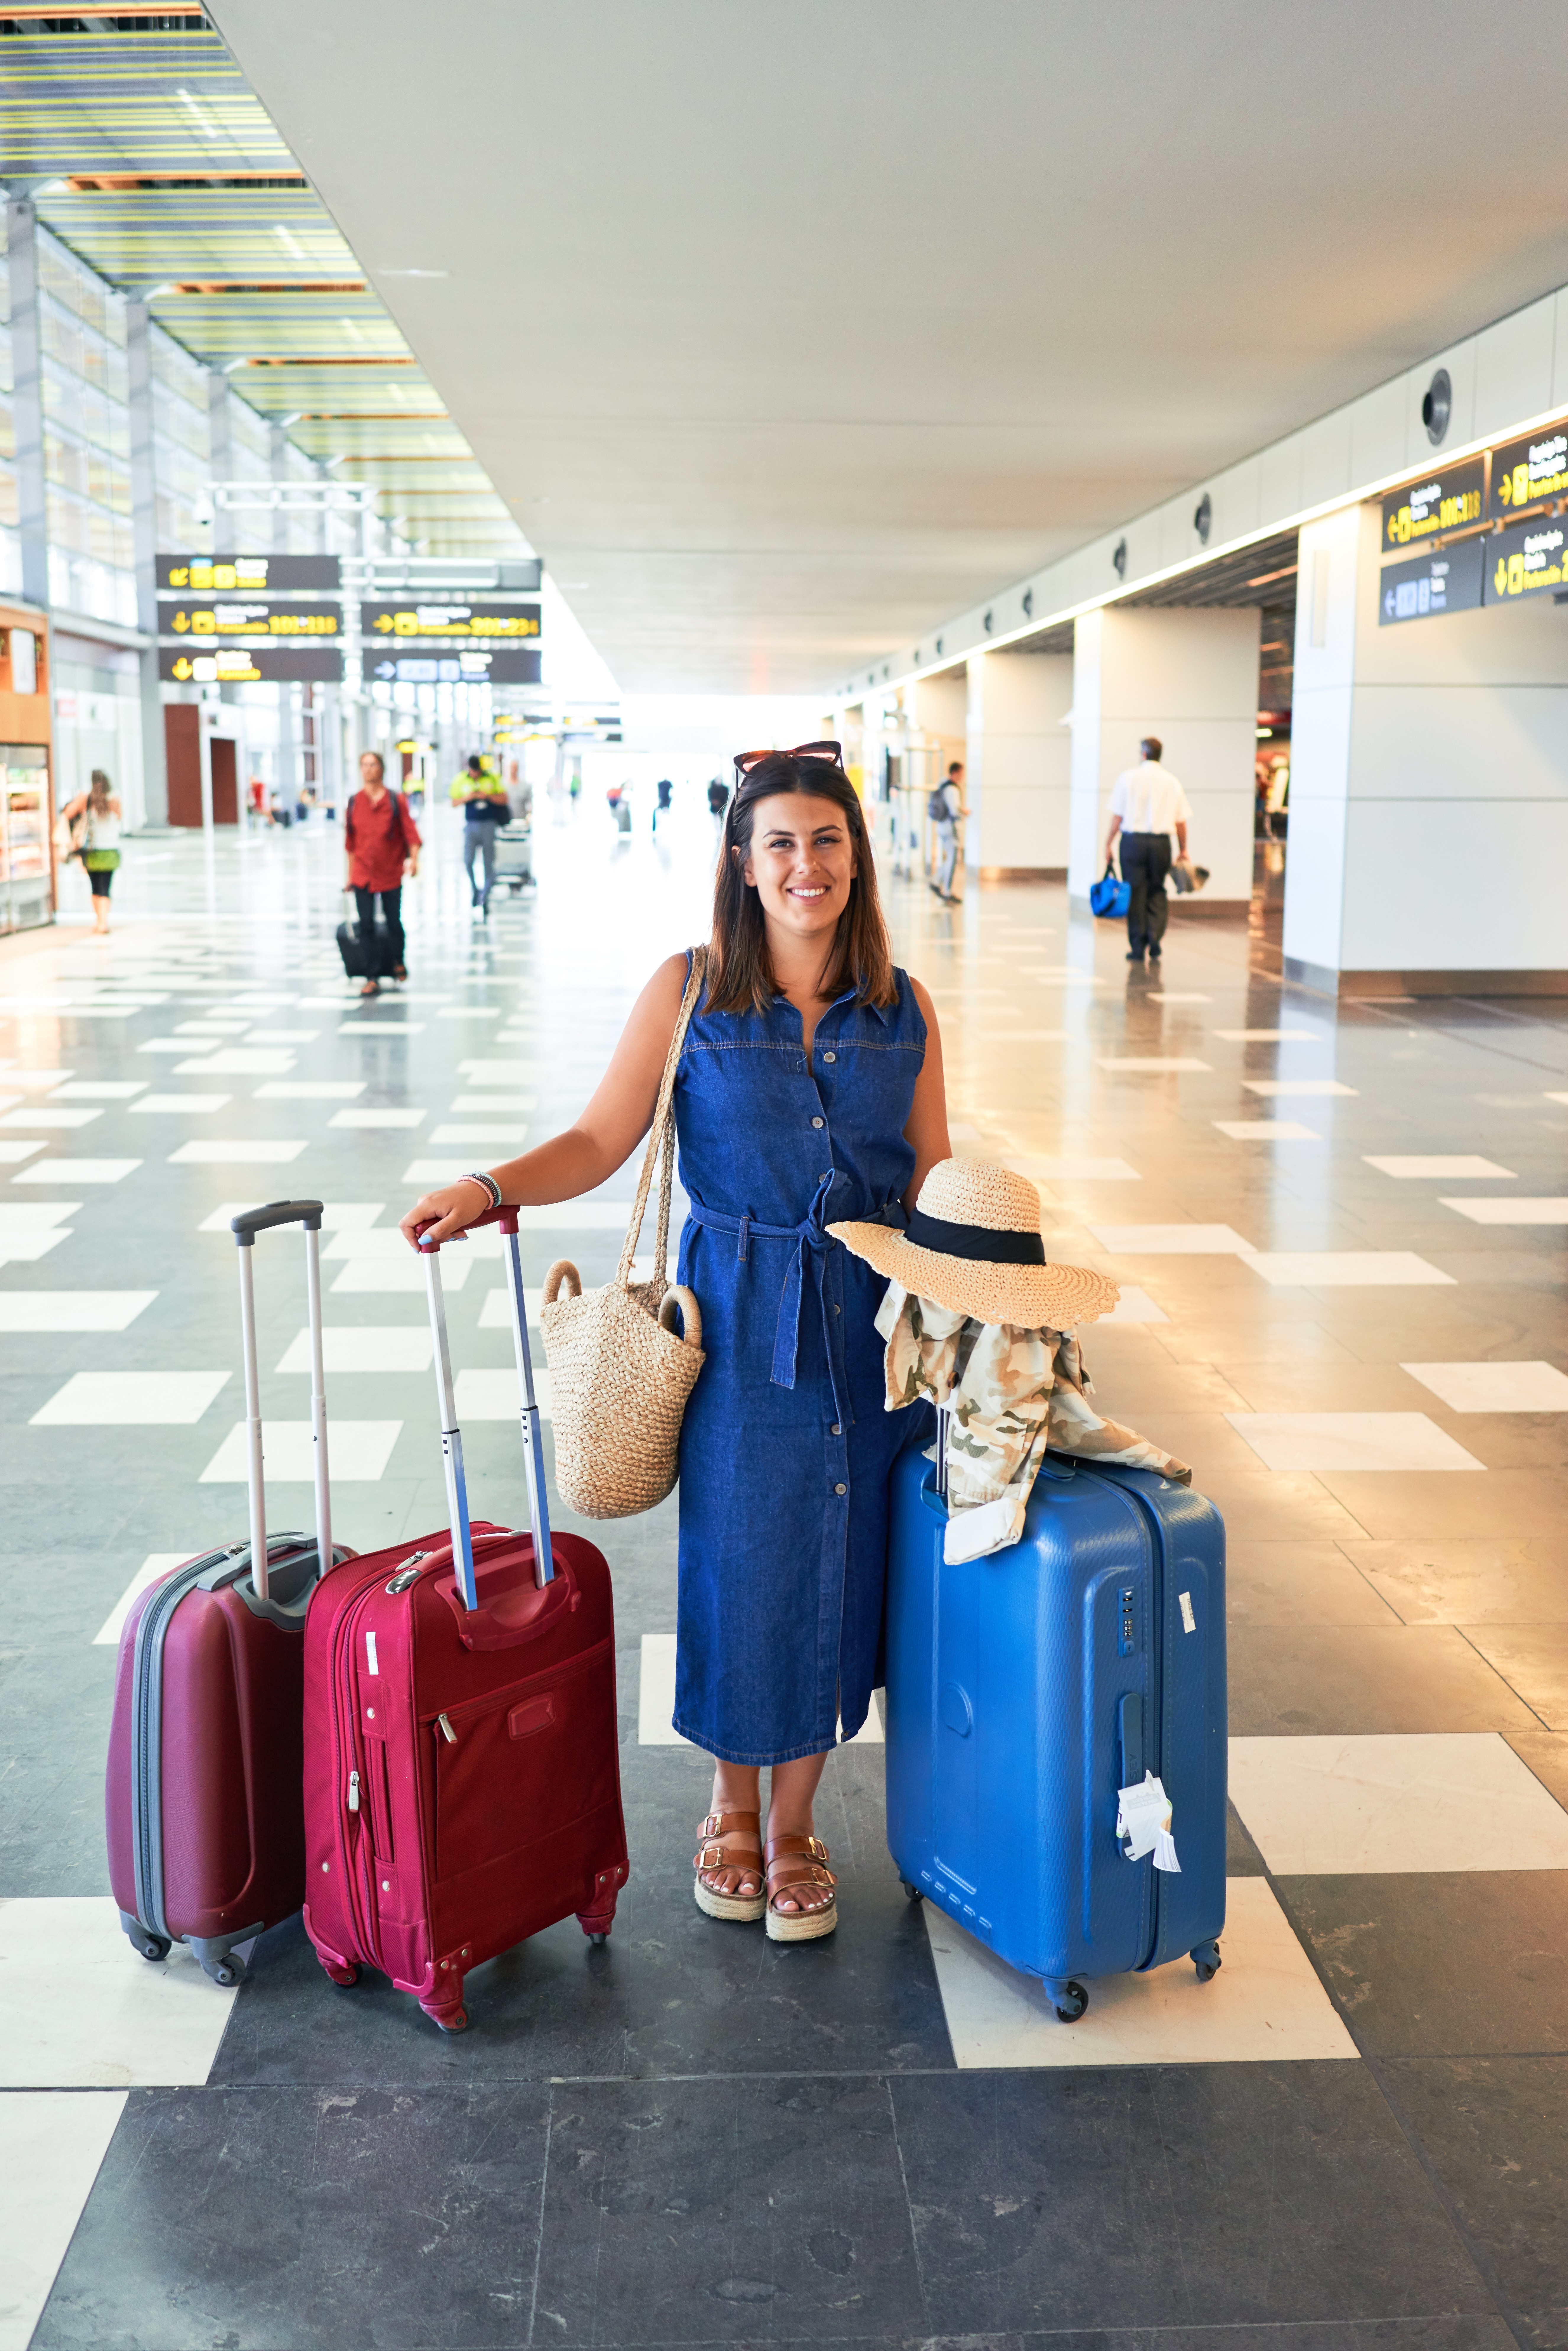 Young beautiful woman at the airport standing with suitcases ready for a vacation trip